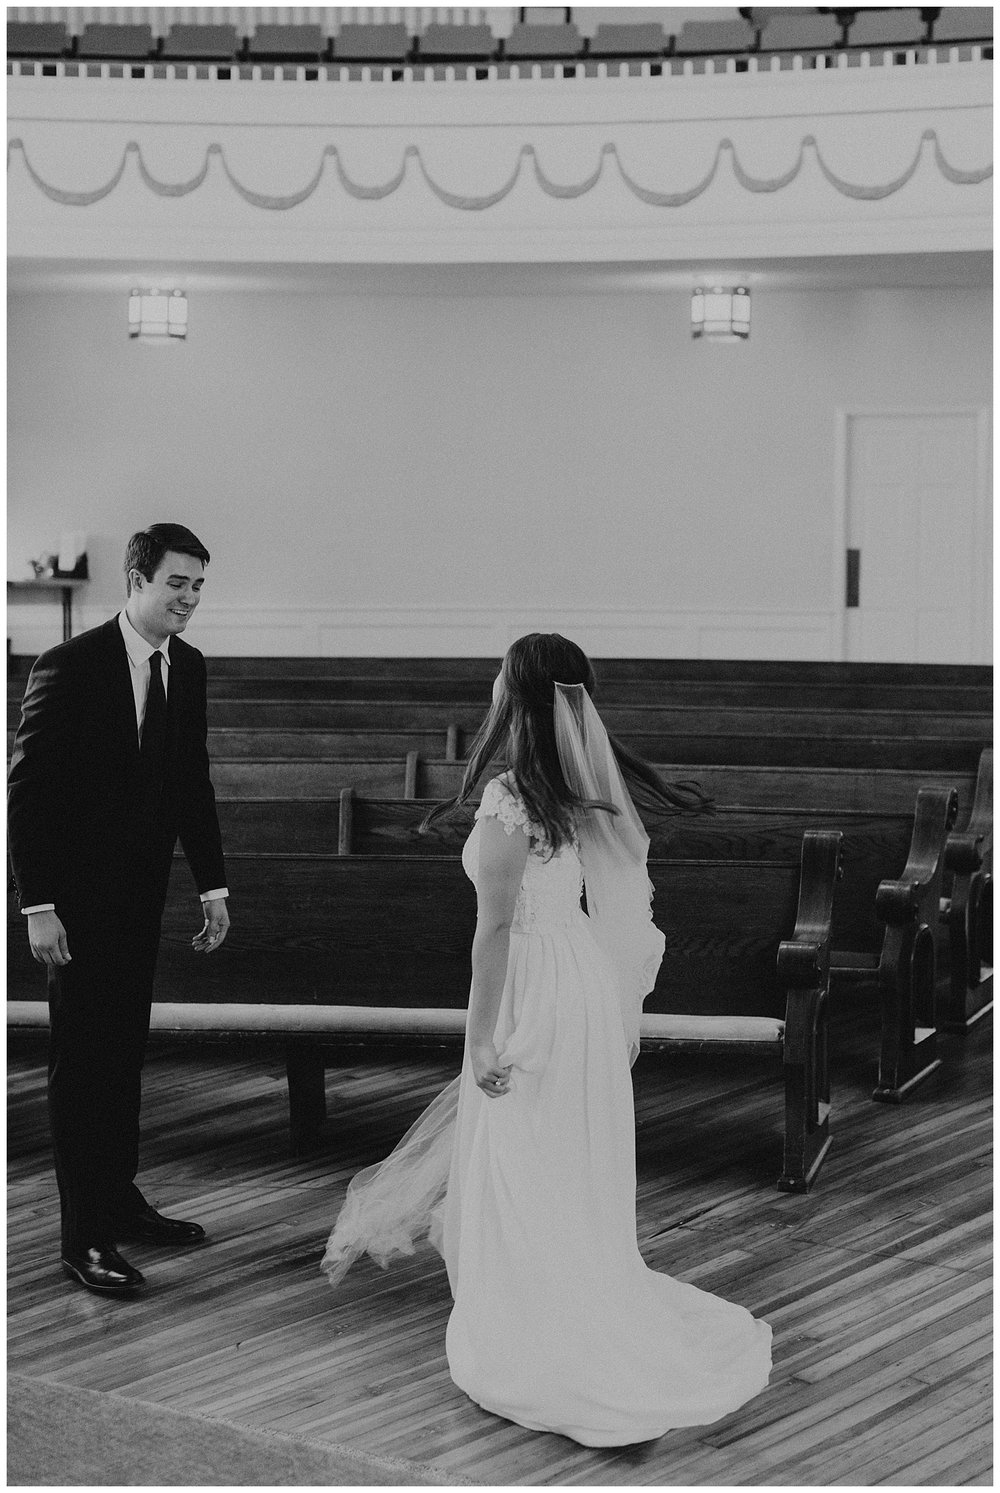 Madalynn Young Photography | Sarah Catherine + Will | Bridge Street Gallery and Loft | Atlanta Wedding Photographer_0126.jpg